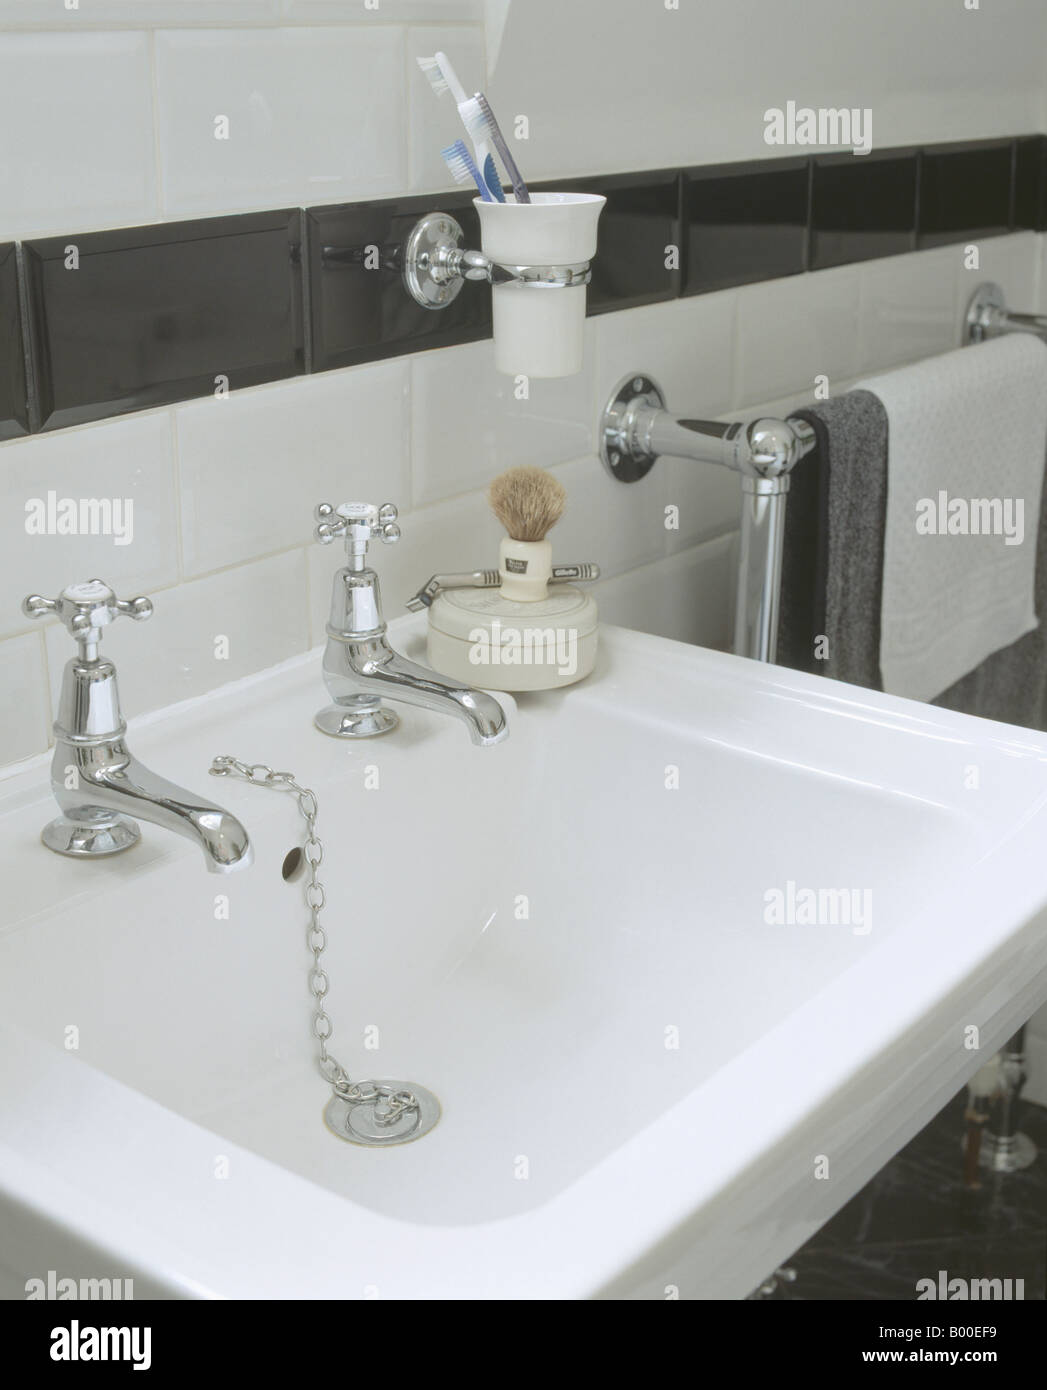 Wall Mounted Toothbrush Holder On Stock Photos